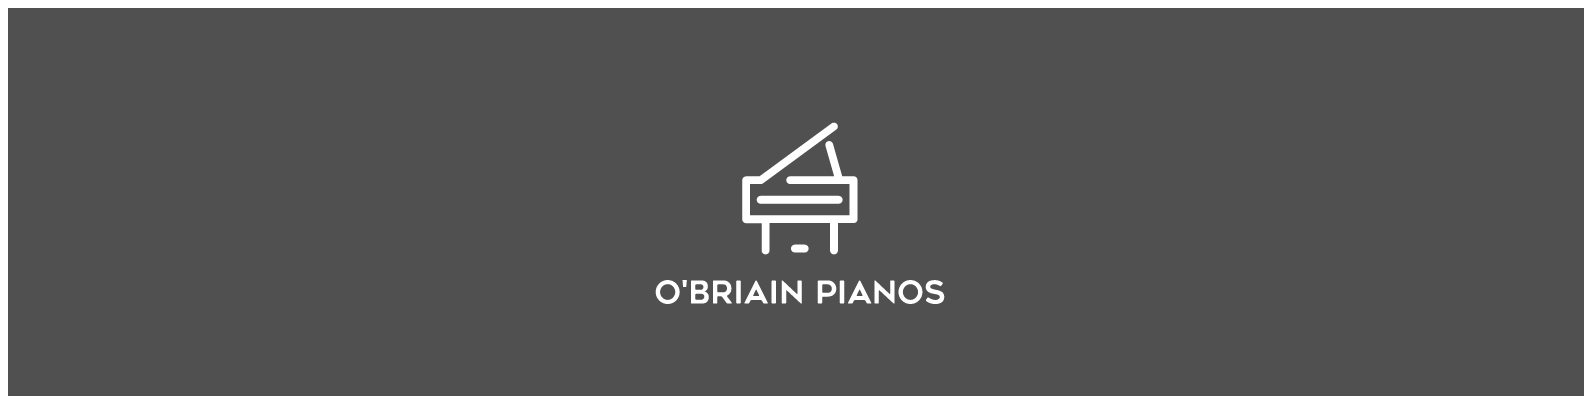 O'Briain Pianos |  Piano Shop Dublin | Piano Store, Lucan, Dublin, Ireland | Pianos for Sale Dublin, Ireland-O'Briain Pianos